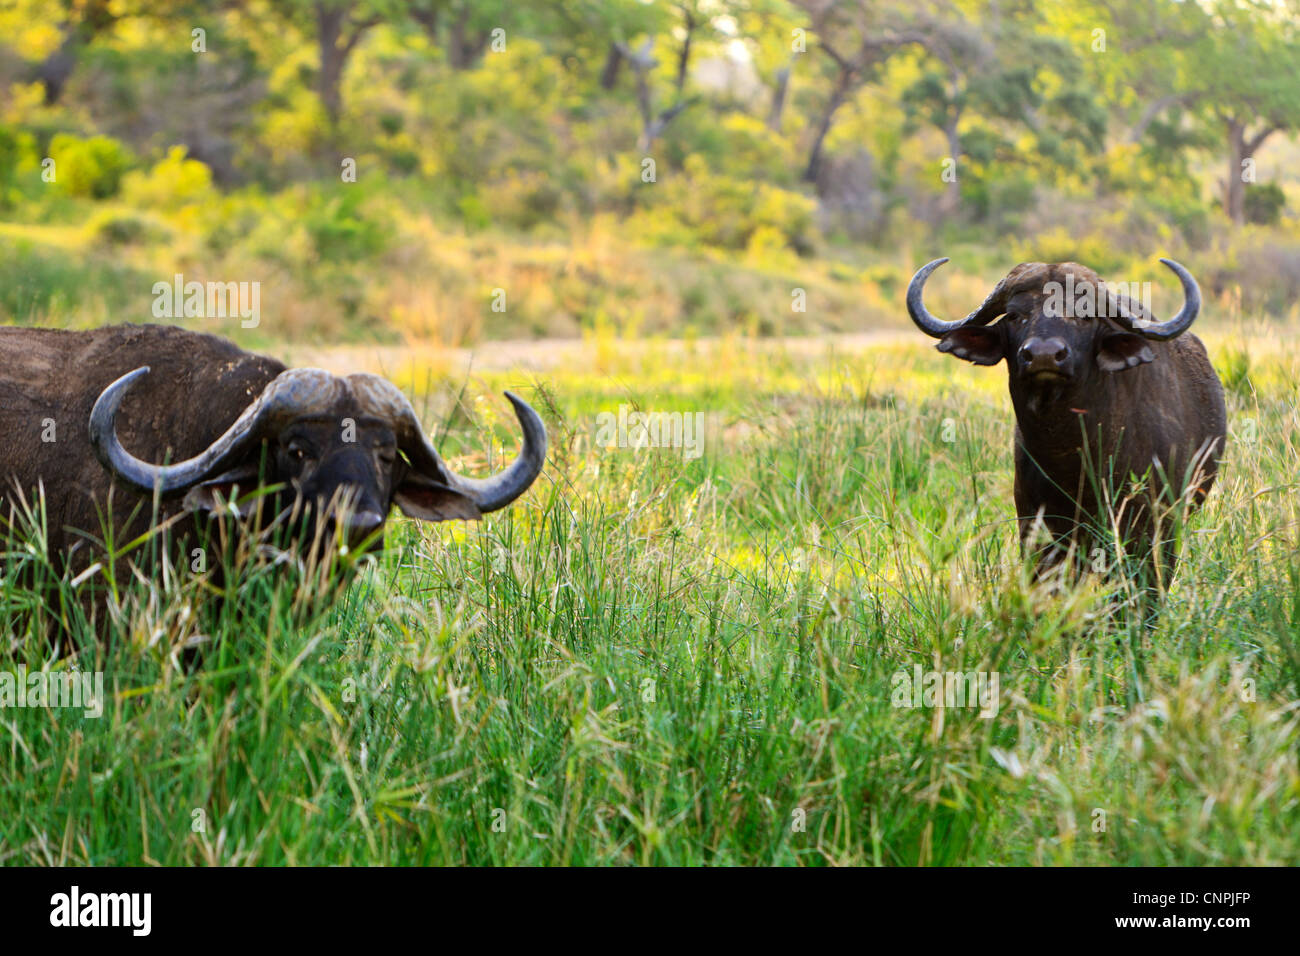 Cape Buffalo 'Syncerus caffer' bulls. These bulls are often referred to as Dagger Boys due to their thick - Stock Image